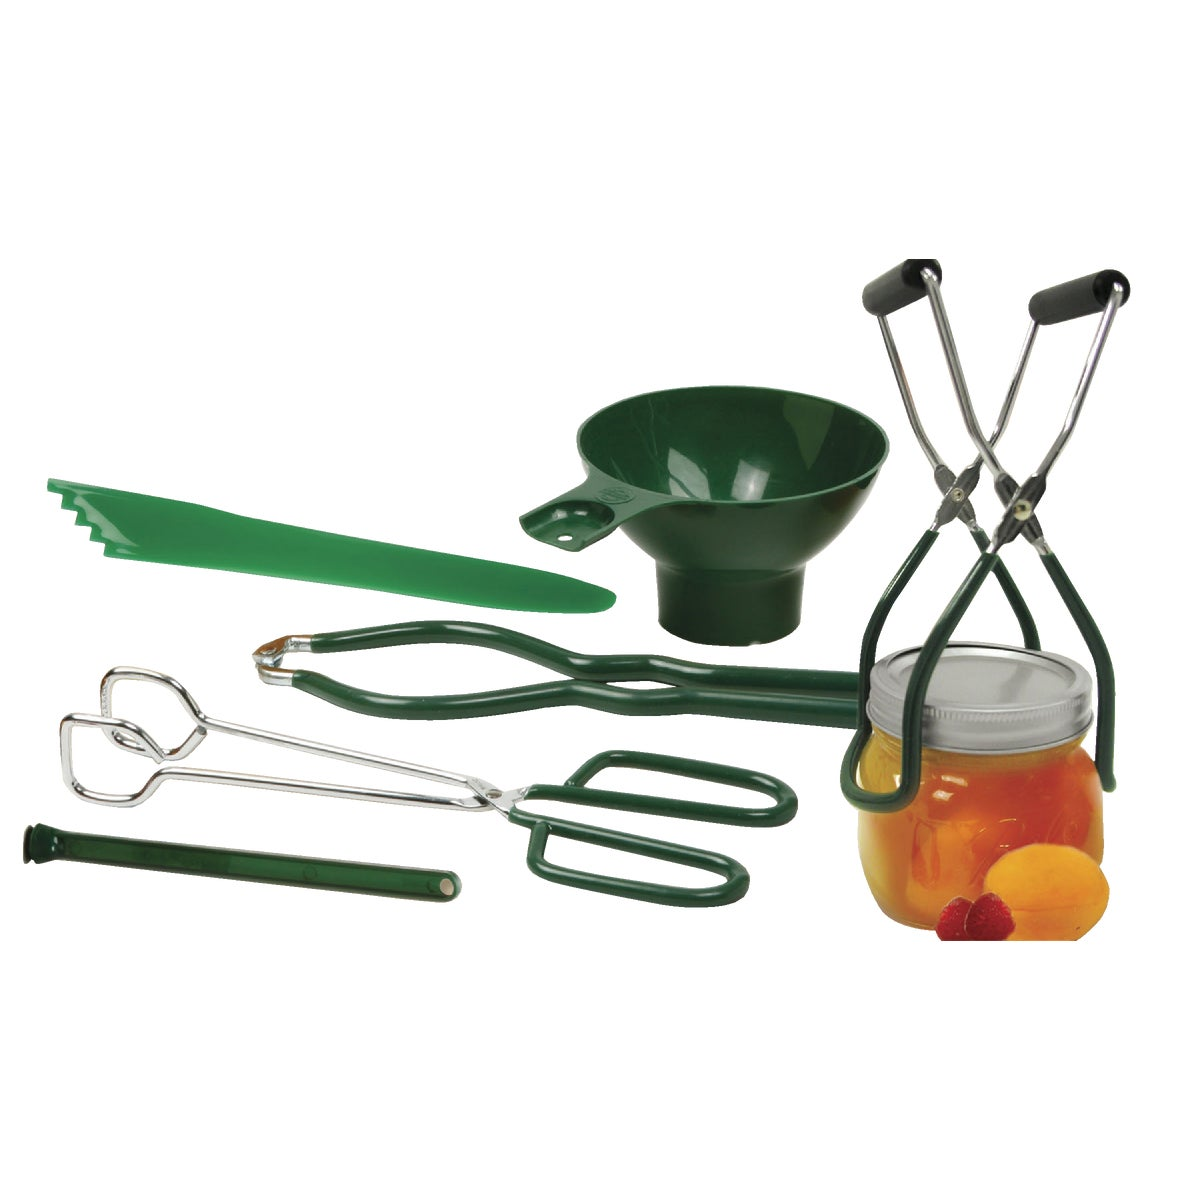 5PC CANNING SET - 599 by Norpro